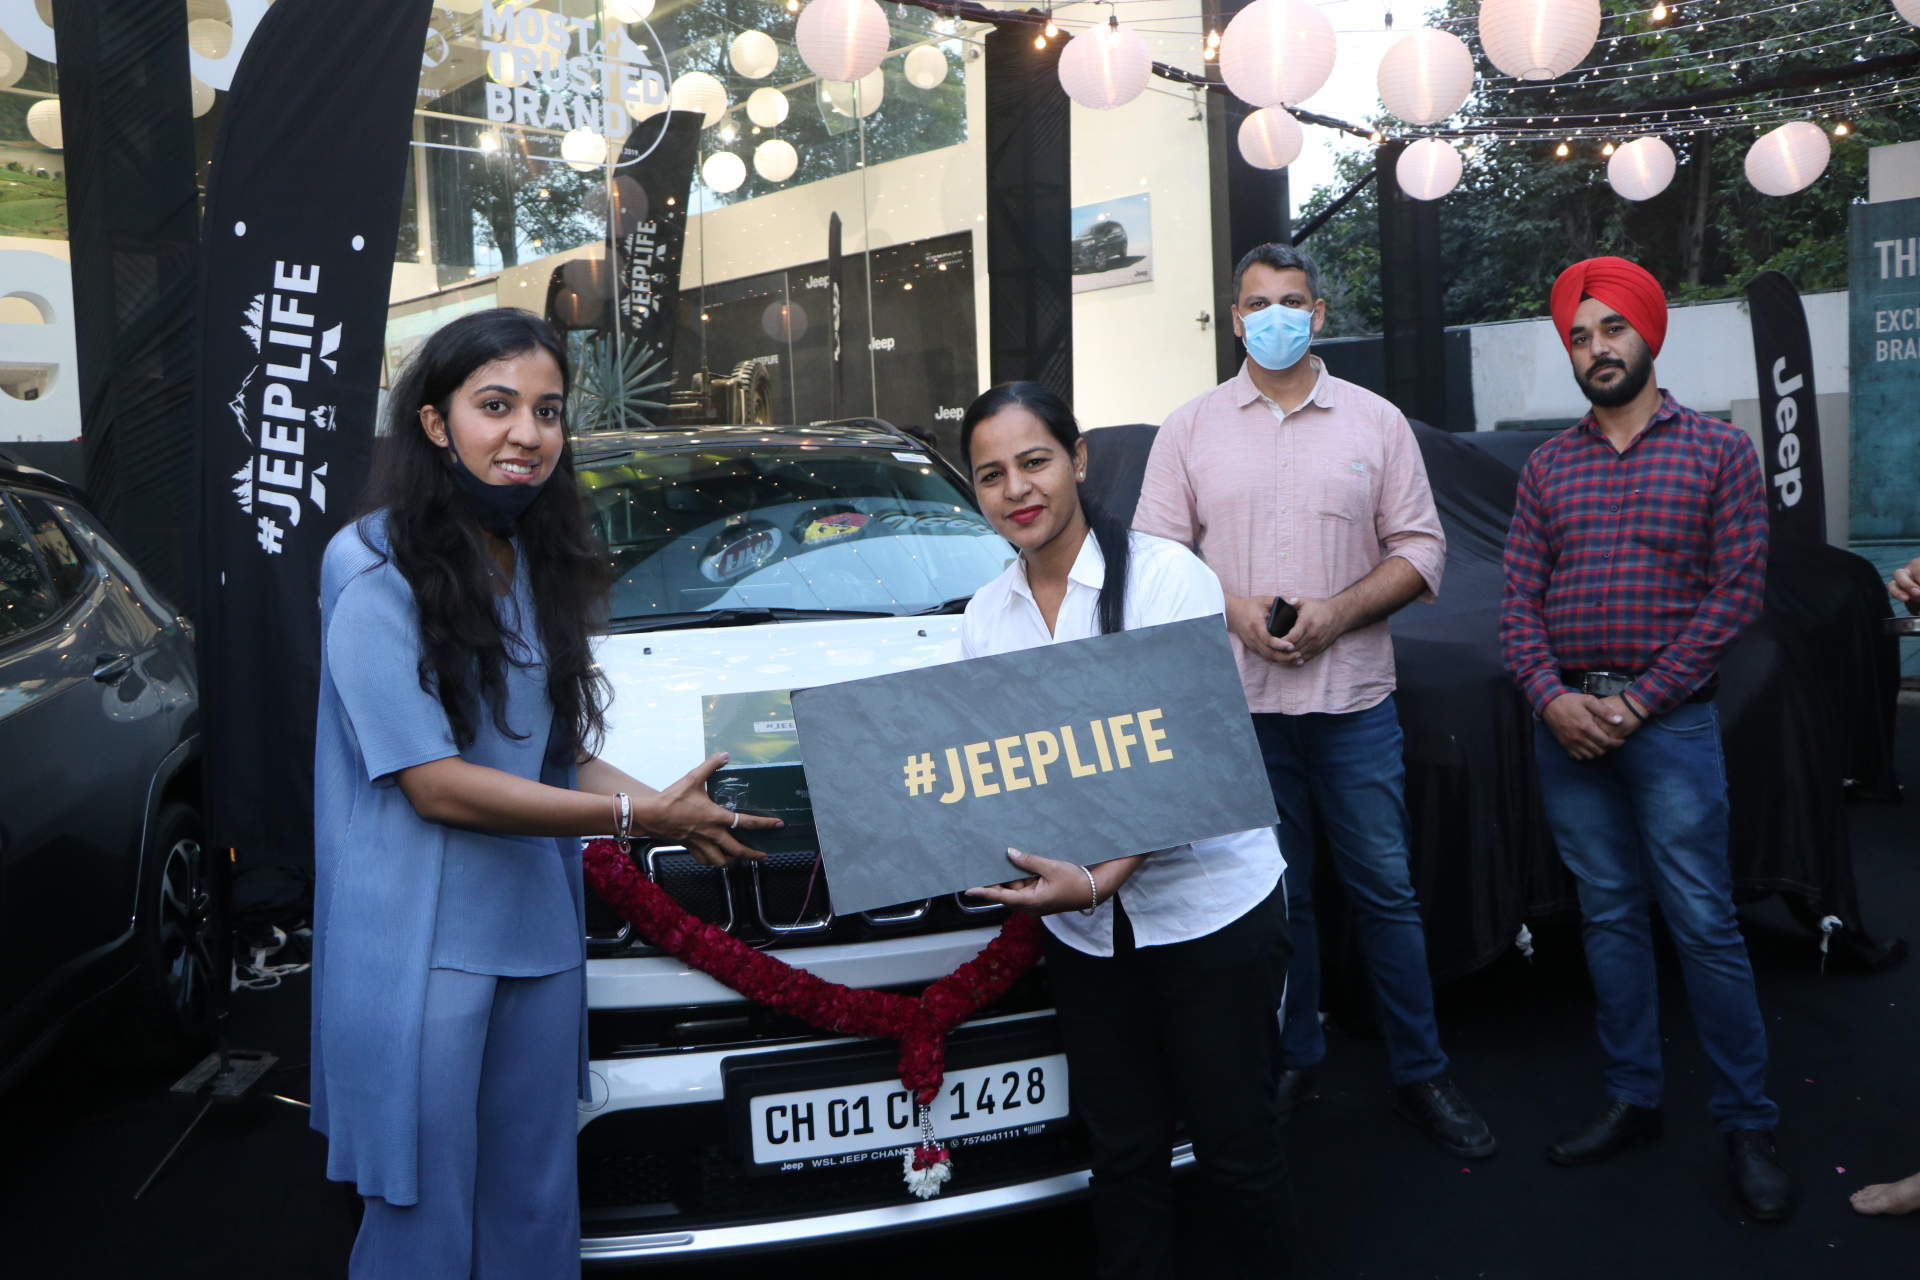 Jeep Chandigarh Starts Navratri Celebrations with 15 Jeep SUV deliveries on a Single Day